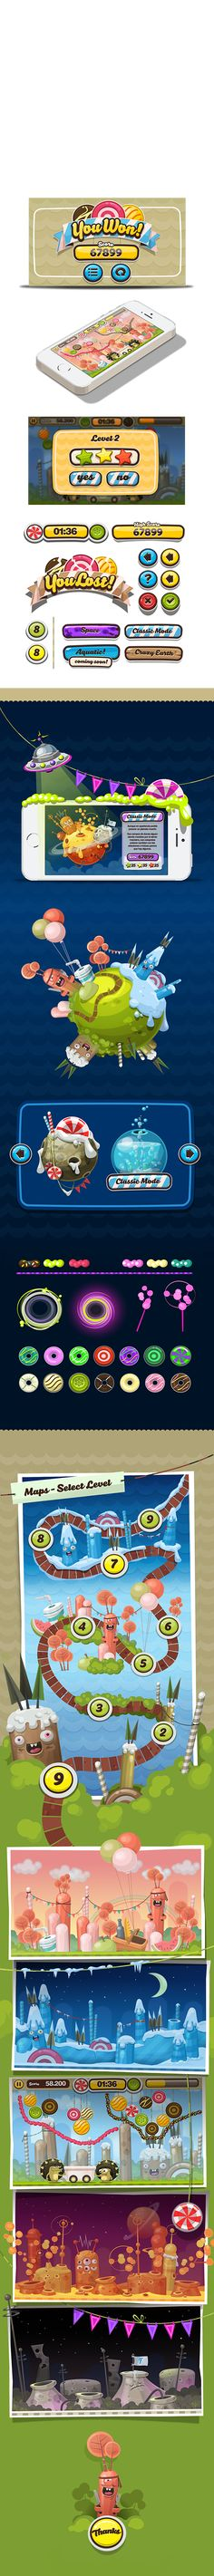 Feed the Twins. Mobile Game by Gabriel Mourelle, via Behance